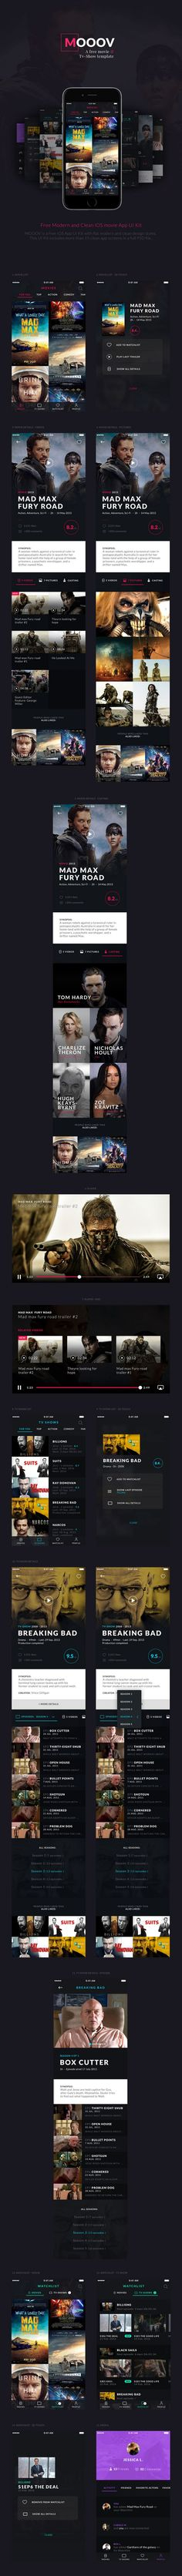 MOOOV - Free Movie iOS App Template by Leser Loïc